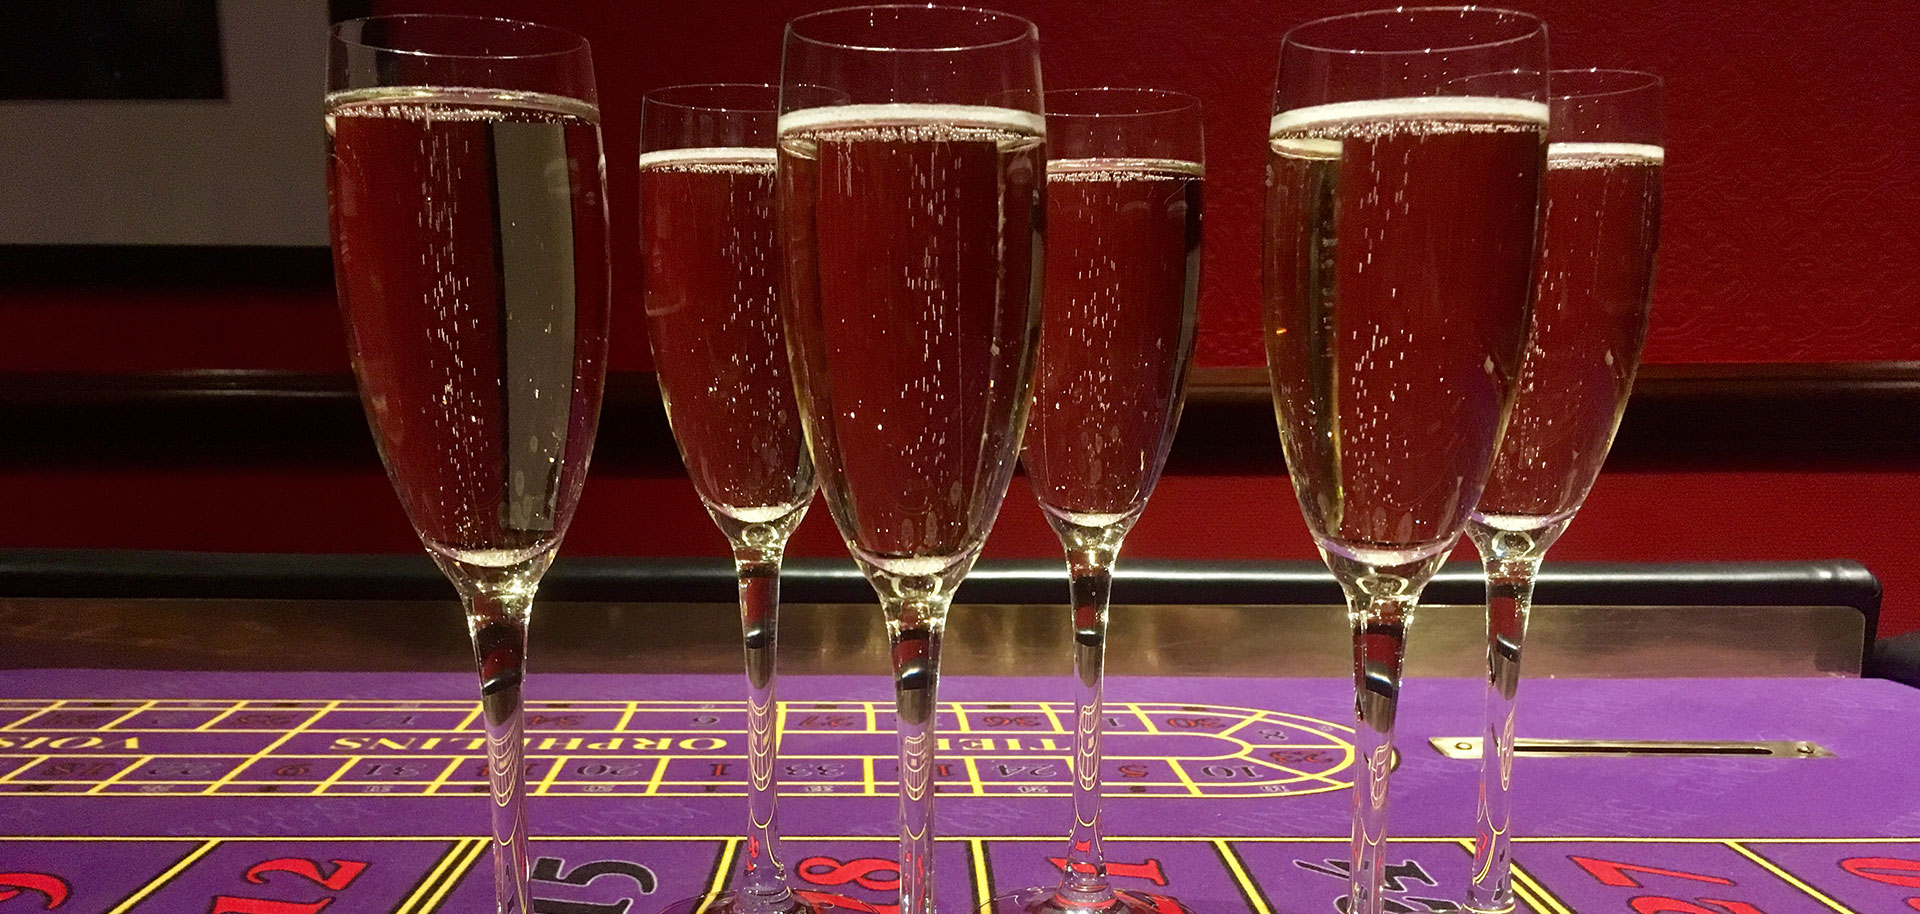 A few glasses of bubbly on a blackjack table.